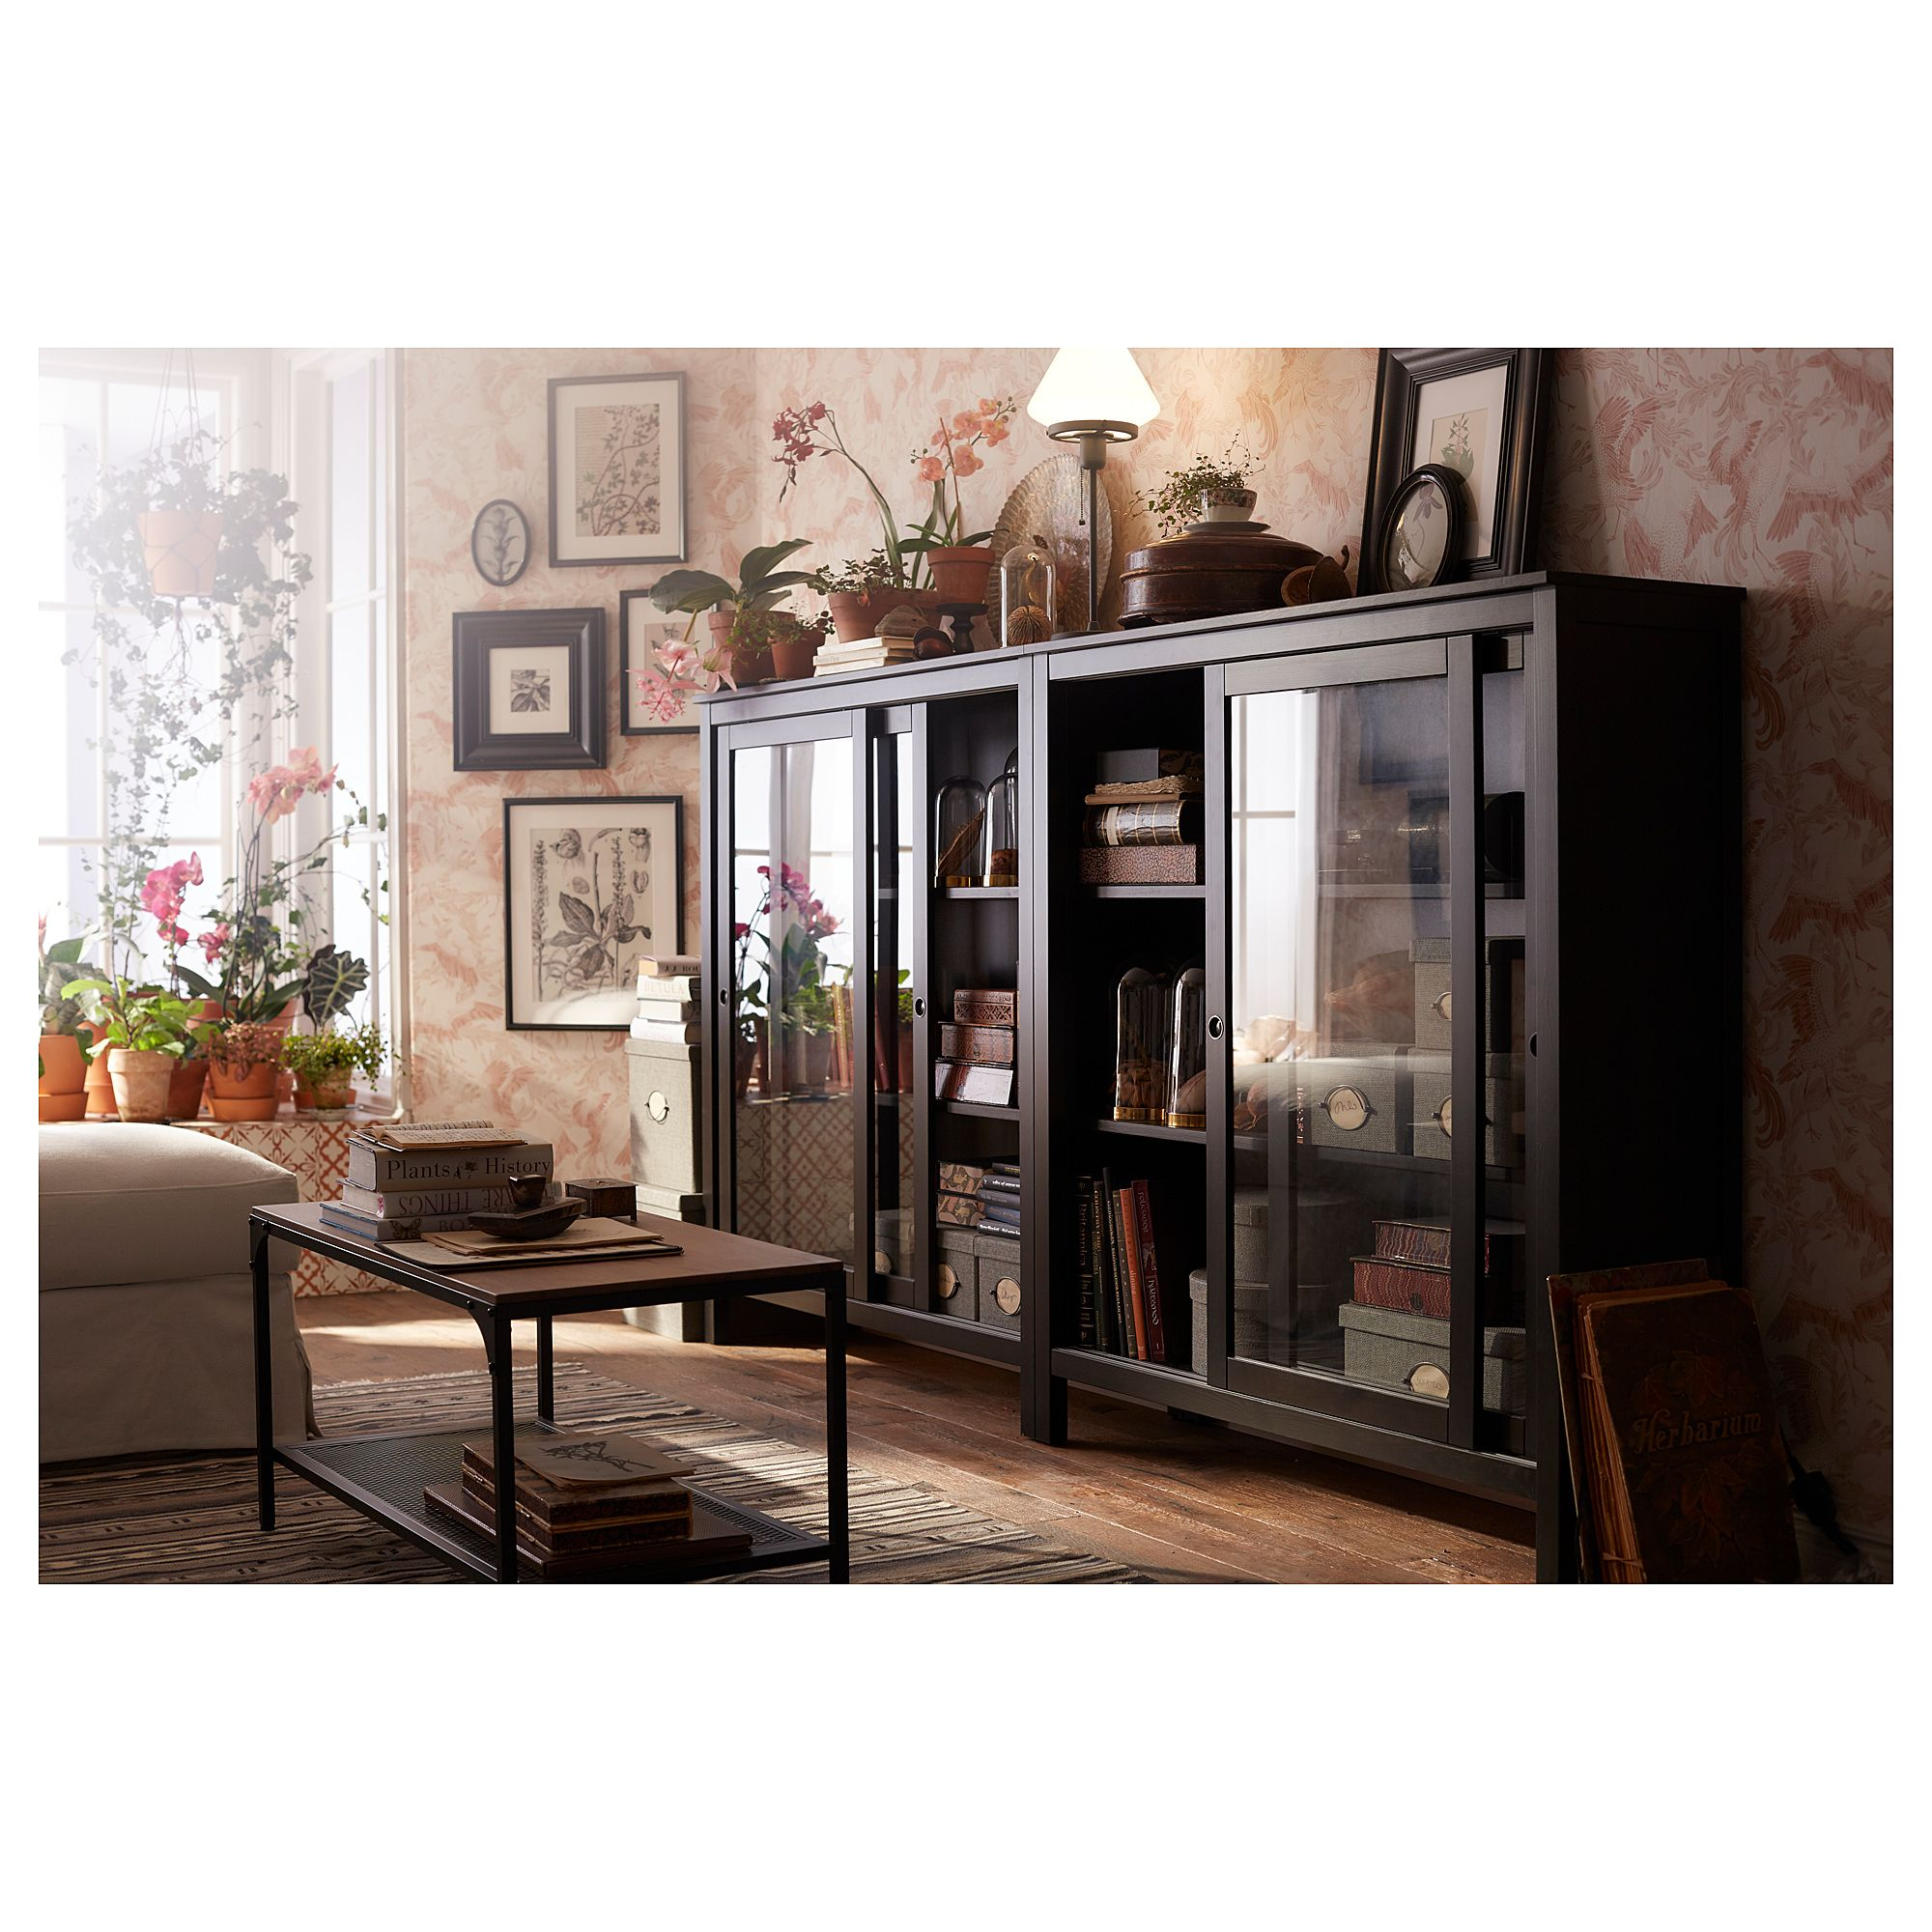 Us Furniture And Home Furnishings Glass Cabinet Doors Ikea Sliding Door Quality Living Room Furniture